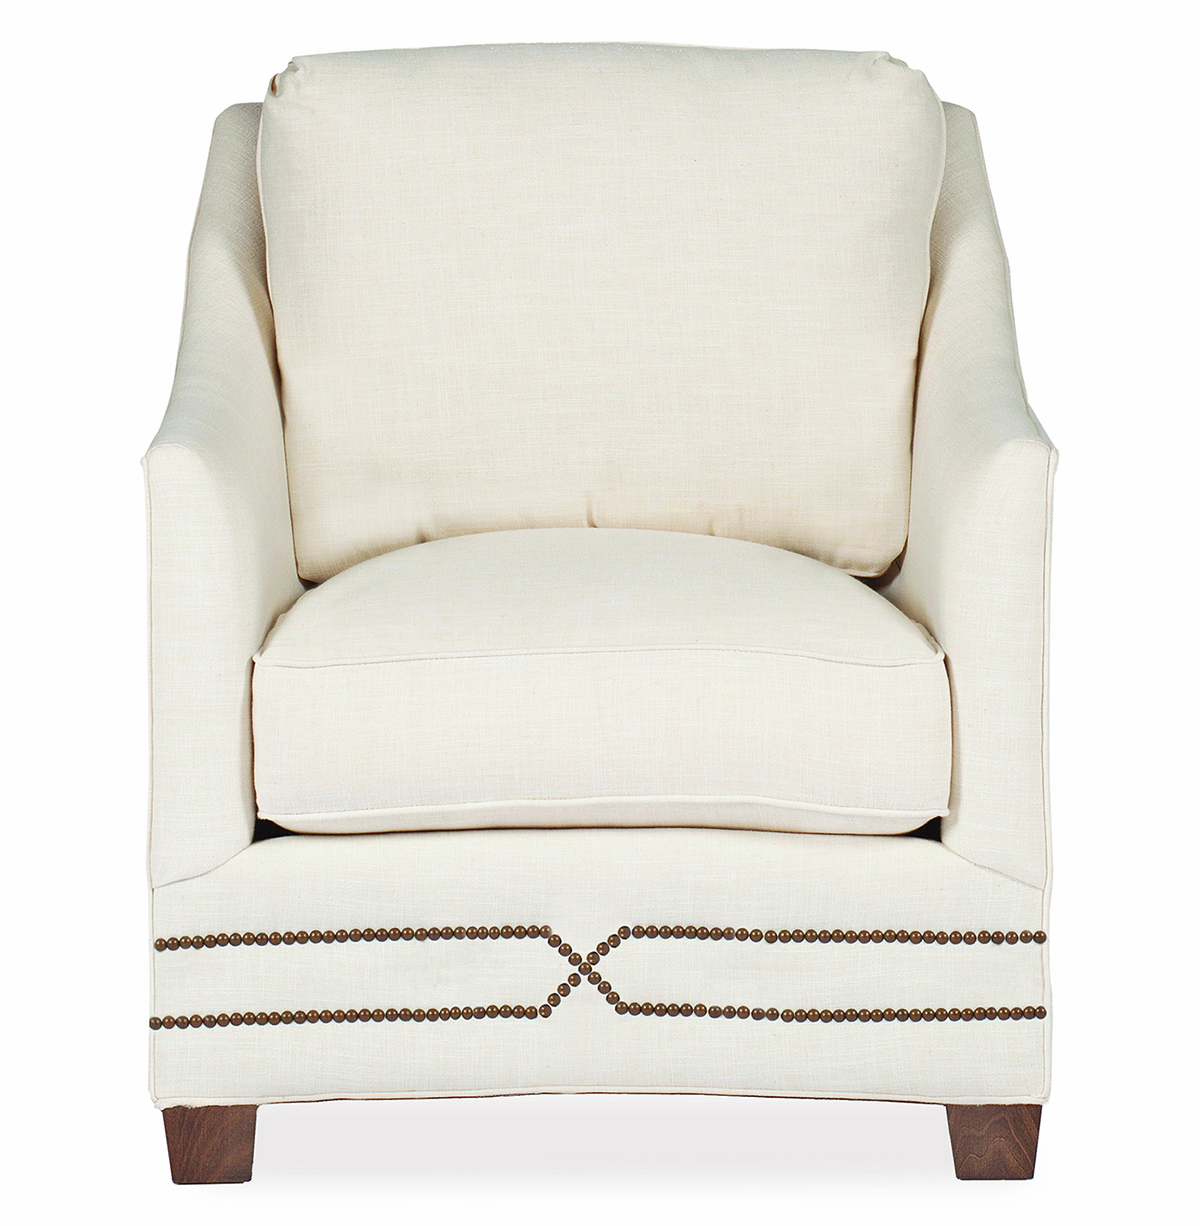 Baldwin Hollywood Regency Curved Front Arm Chair - Straight Nailhead